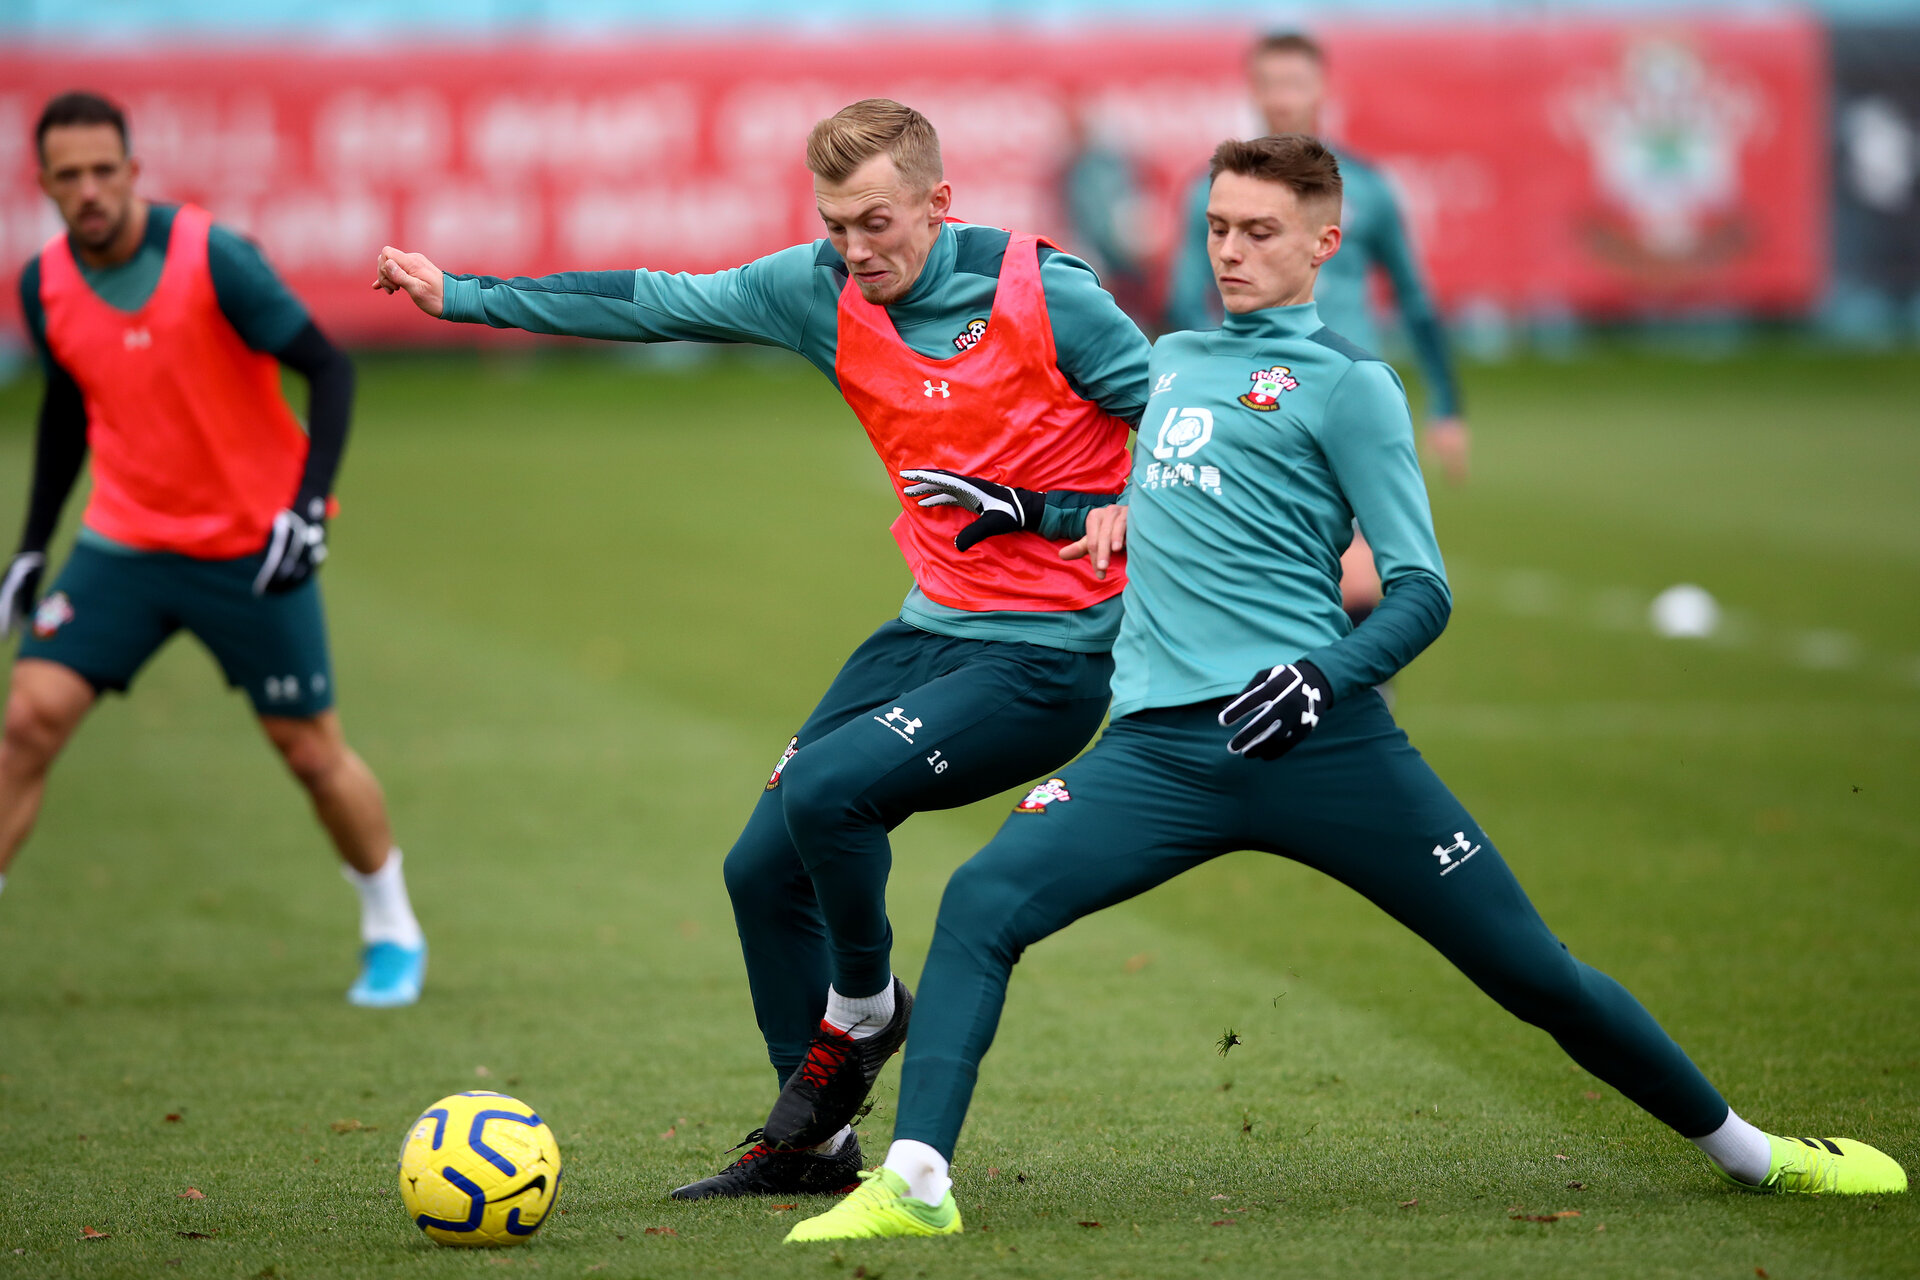 SOUTHAMPTON, ENGLAND - NOVEMBER 19: James Ward-Prowse(L) and Will Smallbone during a Southampton FC training session at the Staplewood Campus on November 19, 2019 in Southampton, England. (Photo by Matt Watson/Southampton FC via Getty Images)